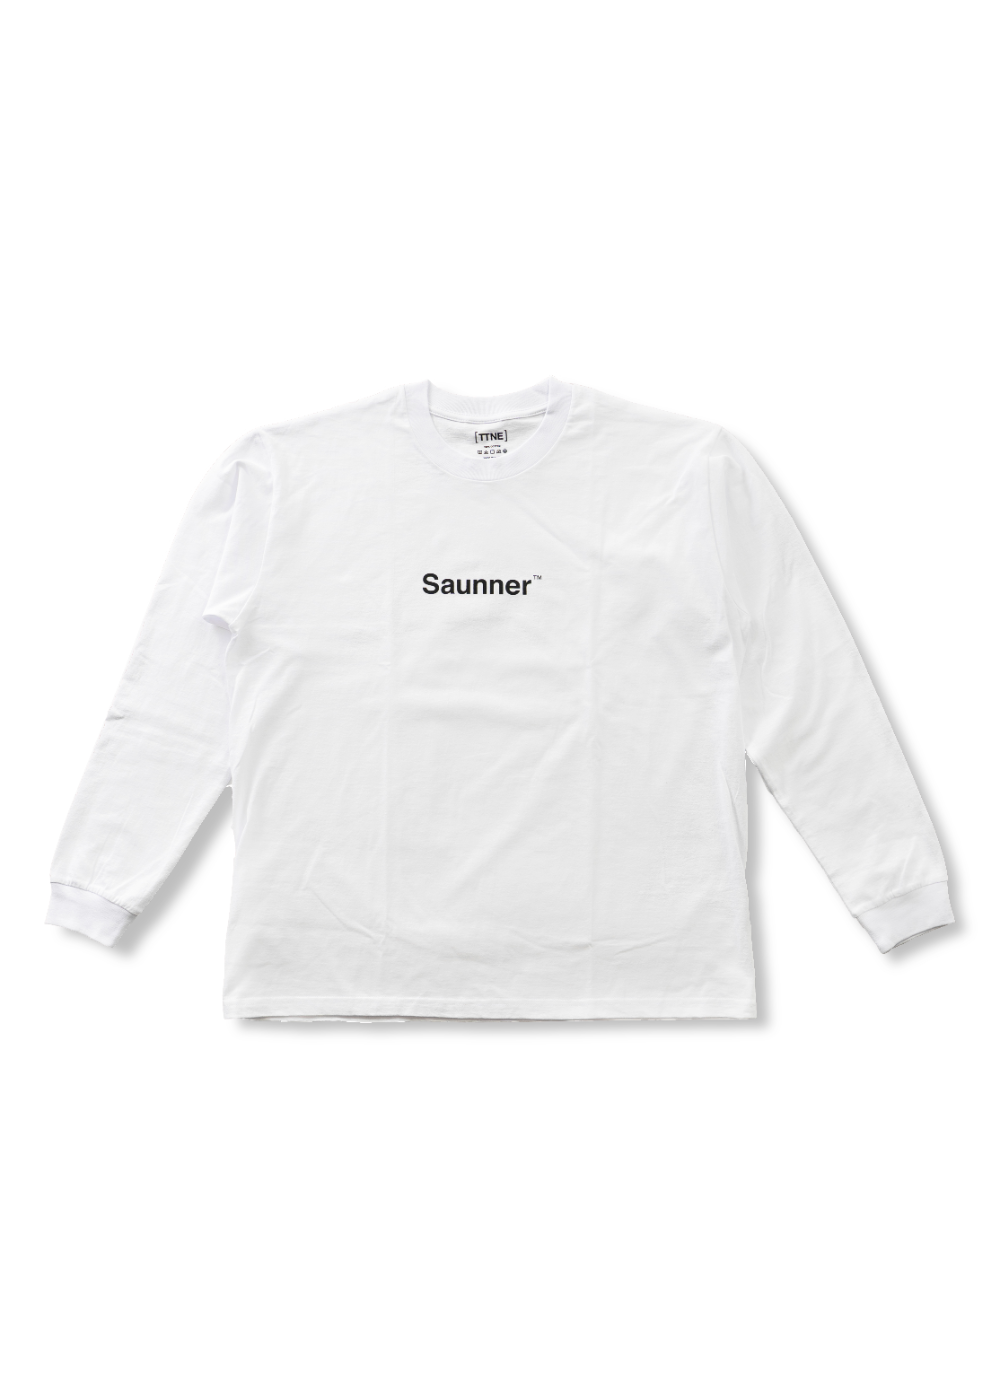 Saunner ™ Logo Long Sleeve Tee - White